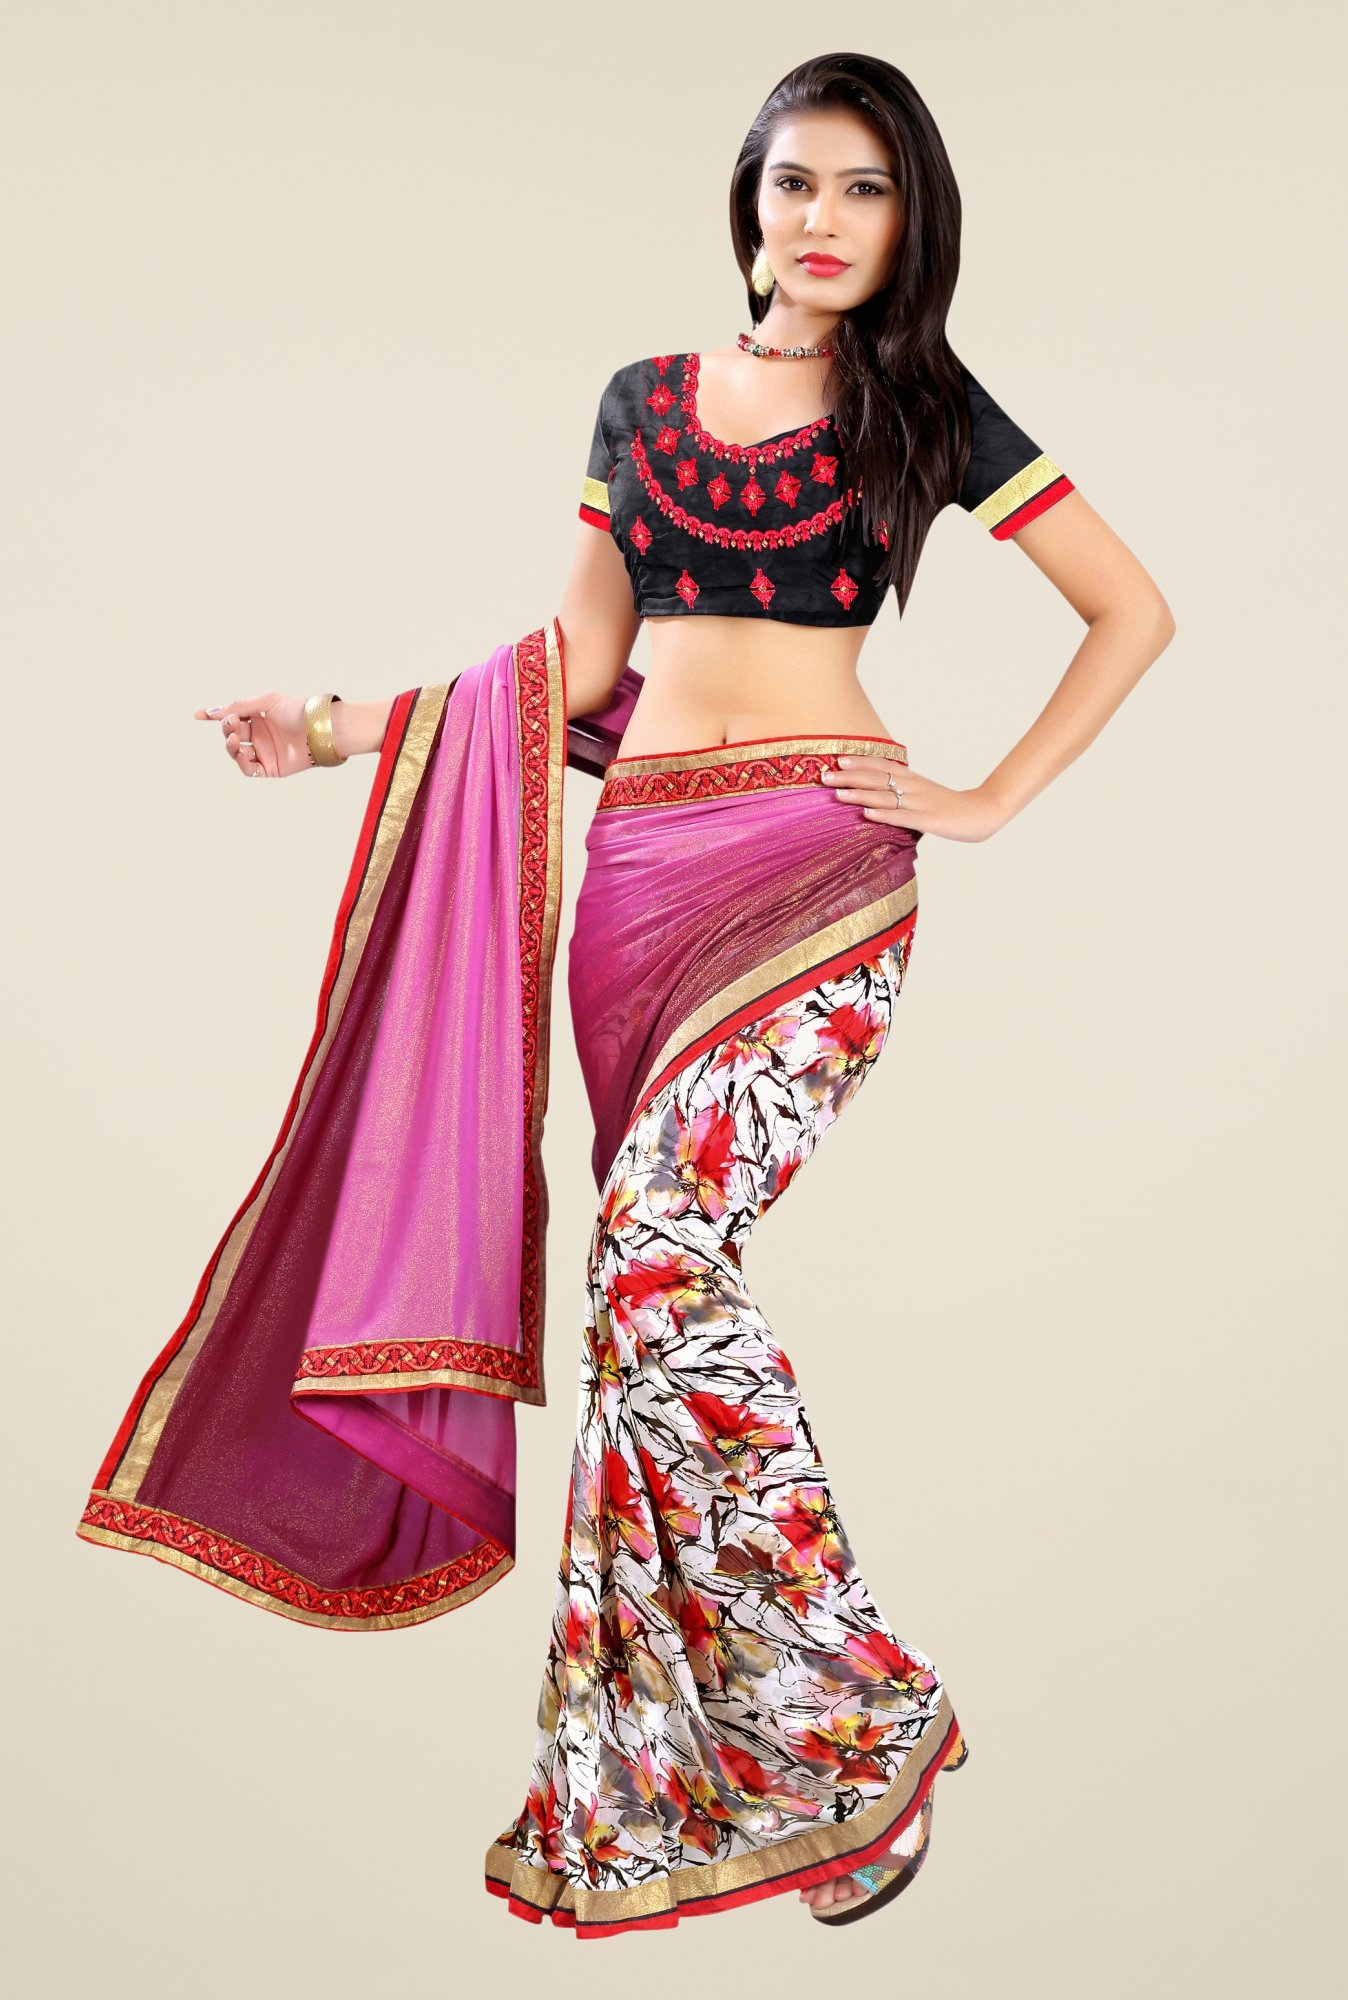 Triveni Off White & Pink Printed Faux Georgette Saree